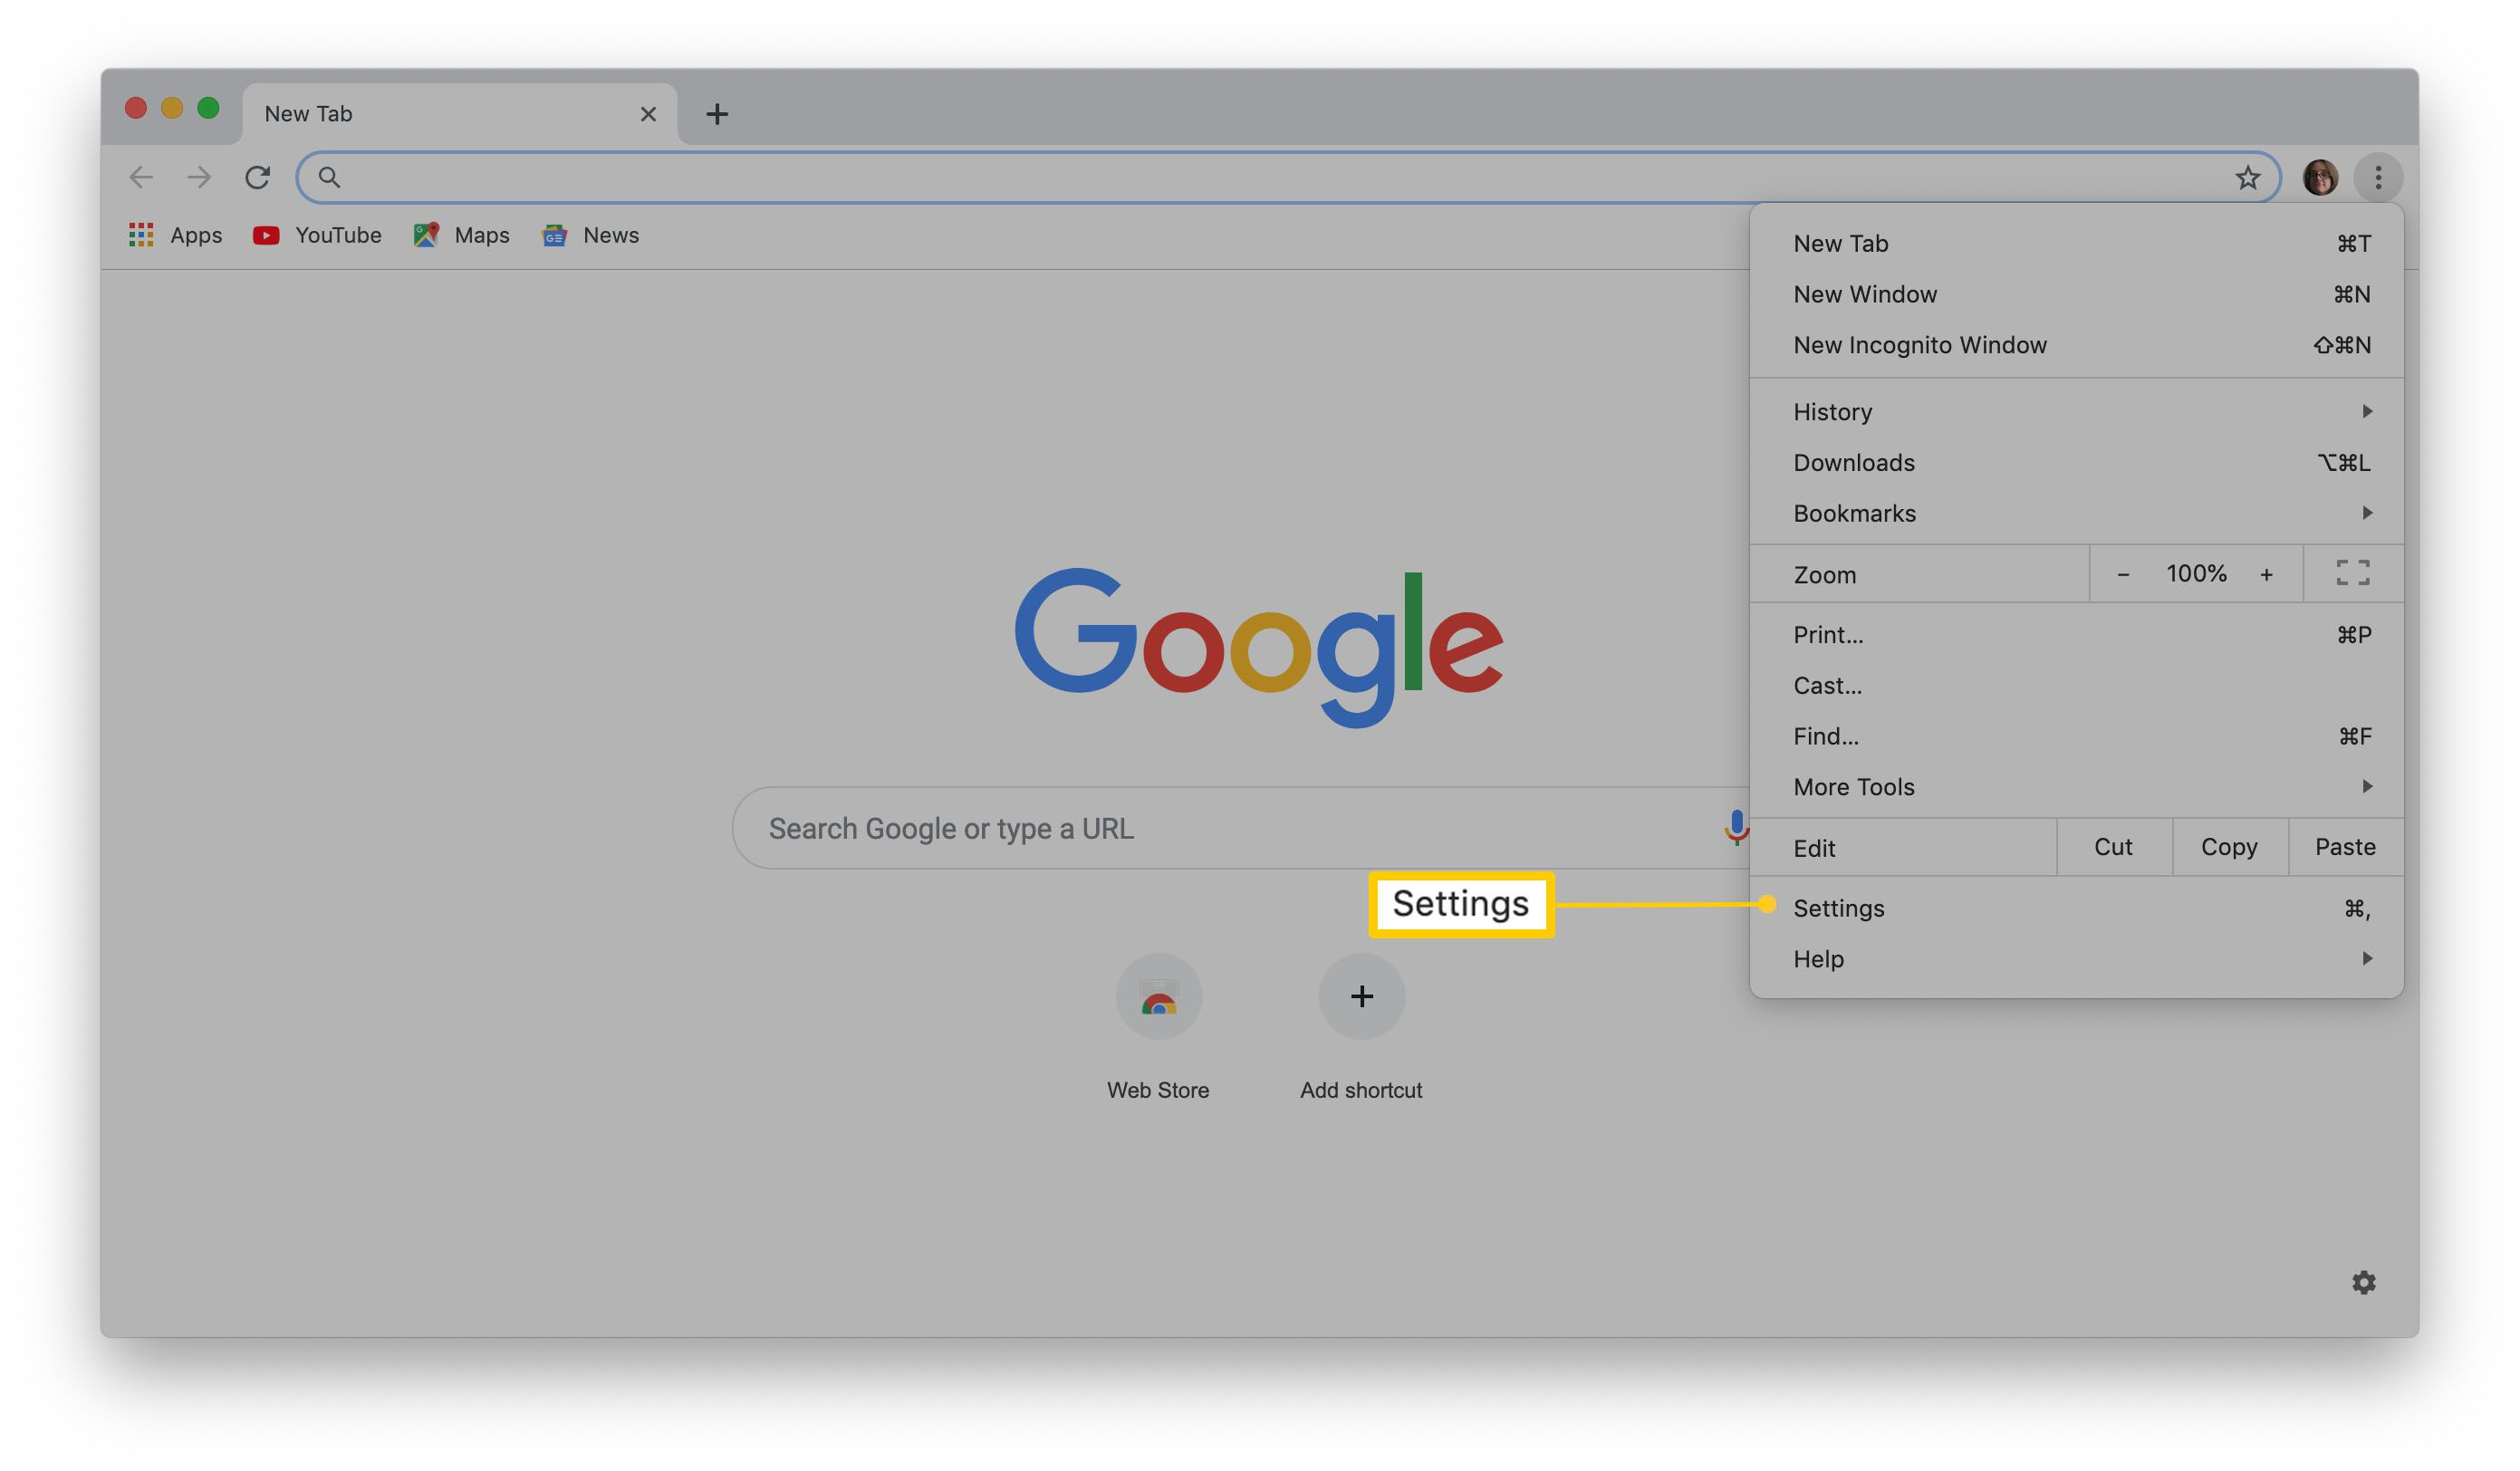 Where to find Settings on Google Chrome